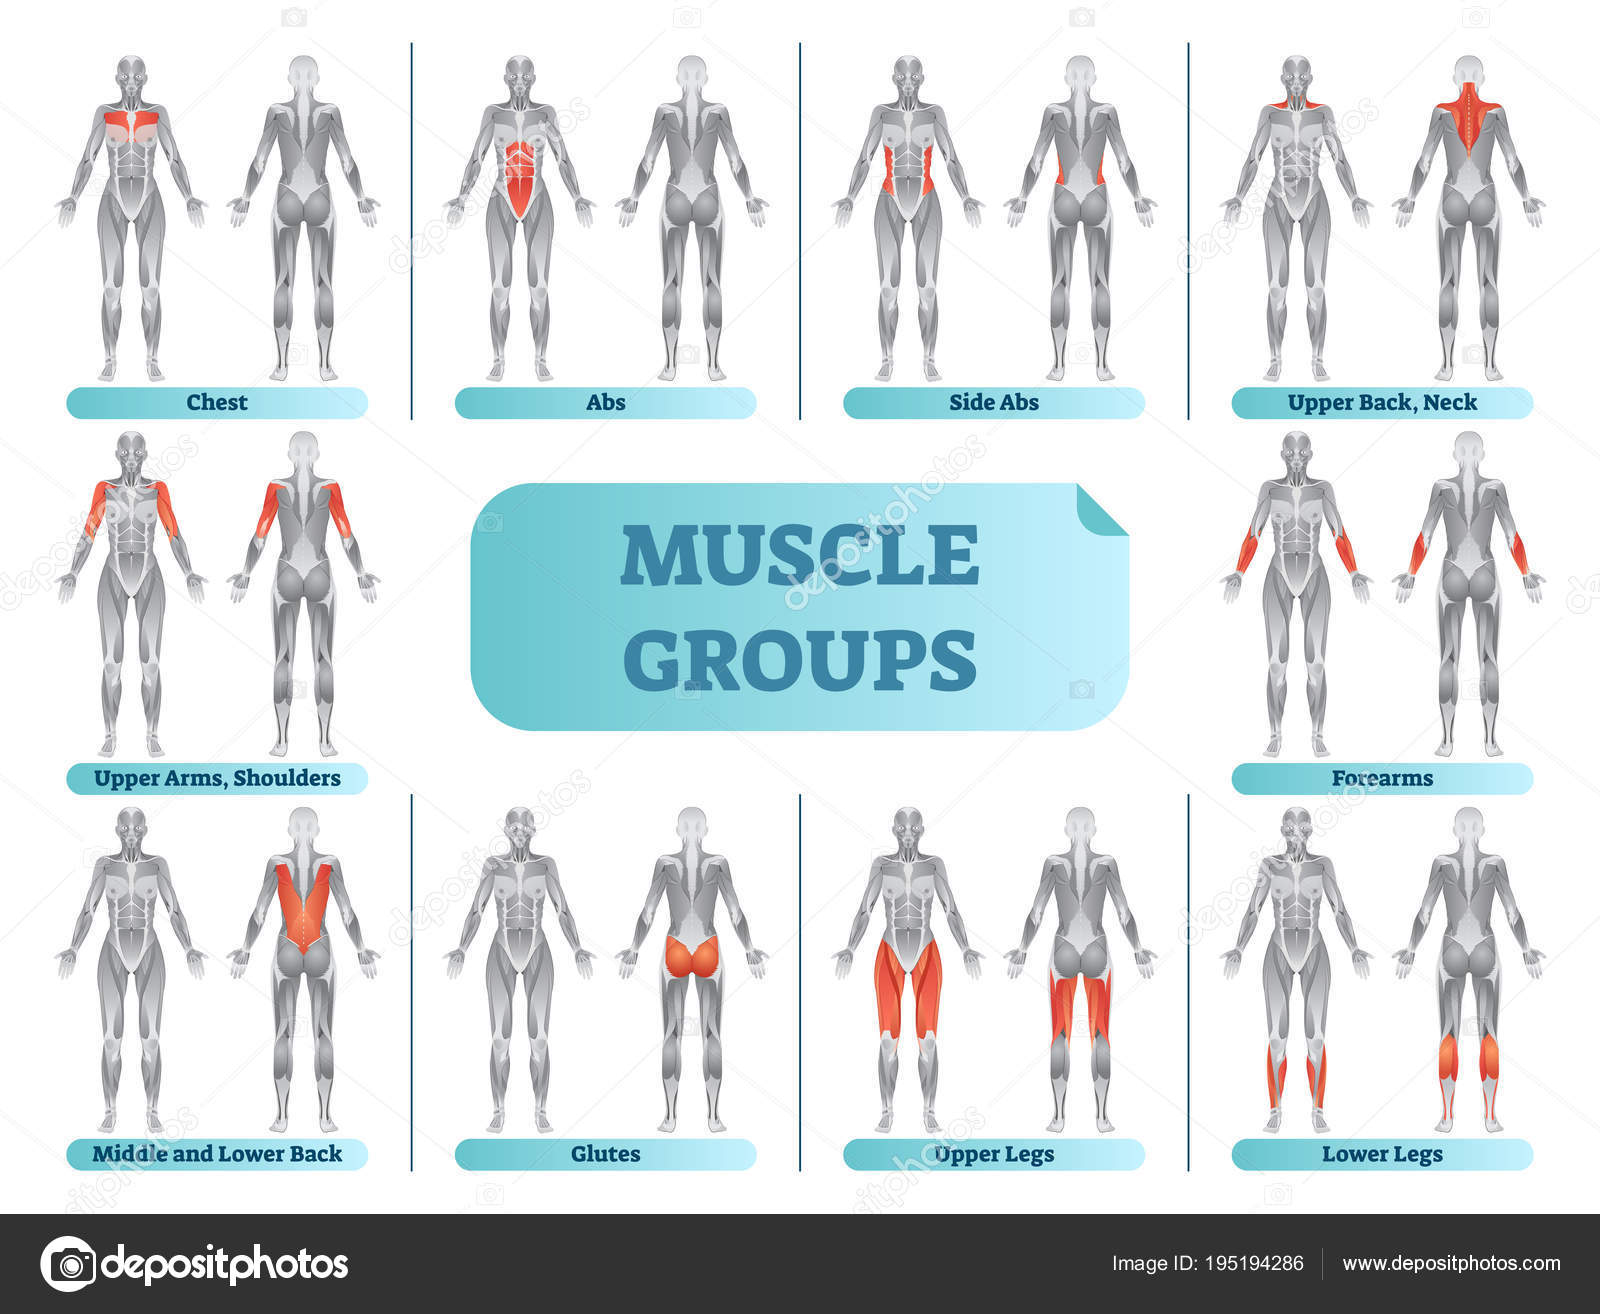 Female muscle groups anatomical fitness vector illustration, sports ...